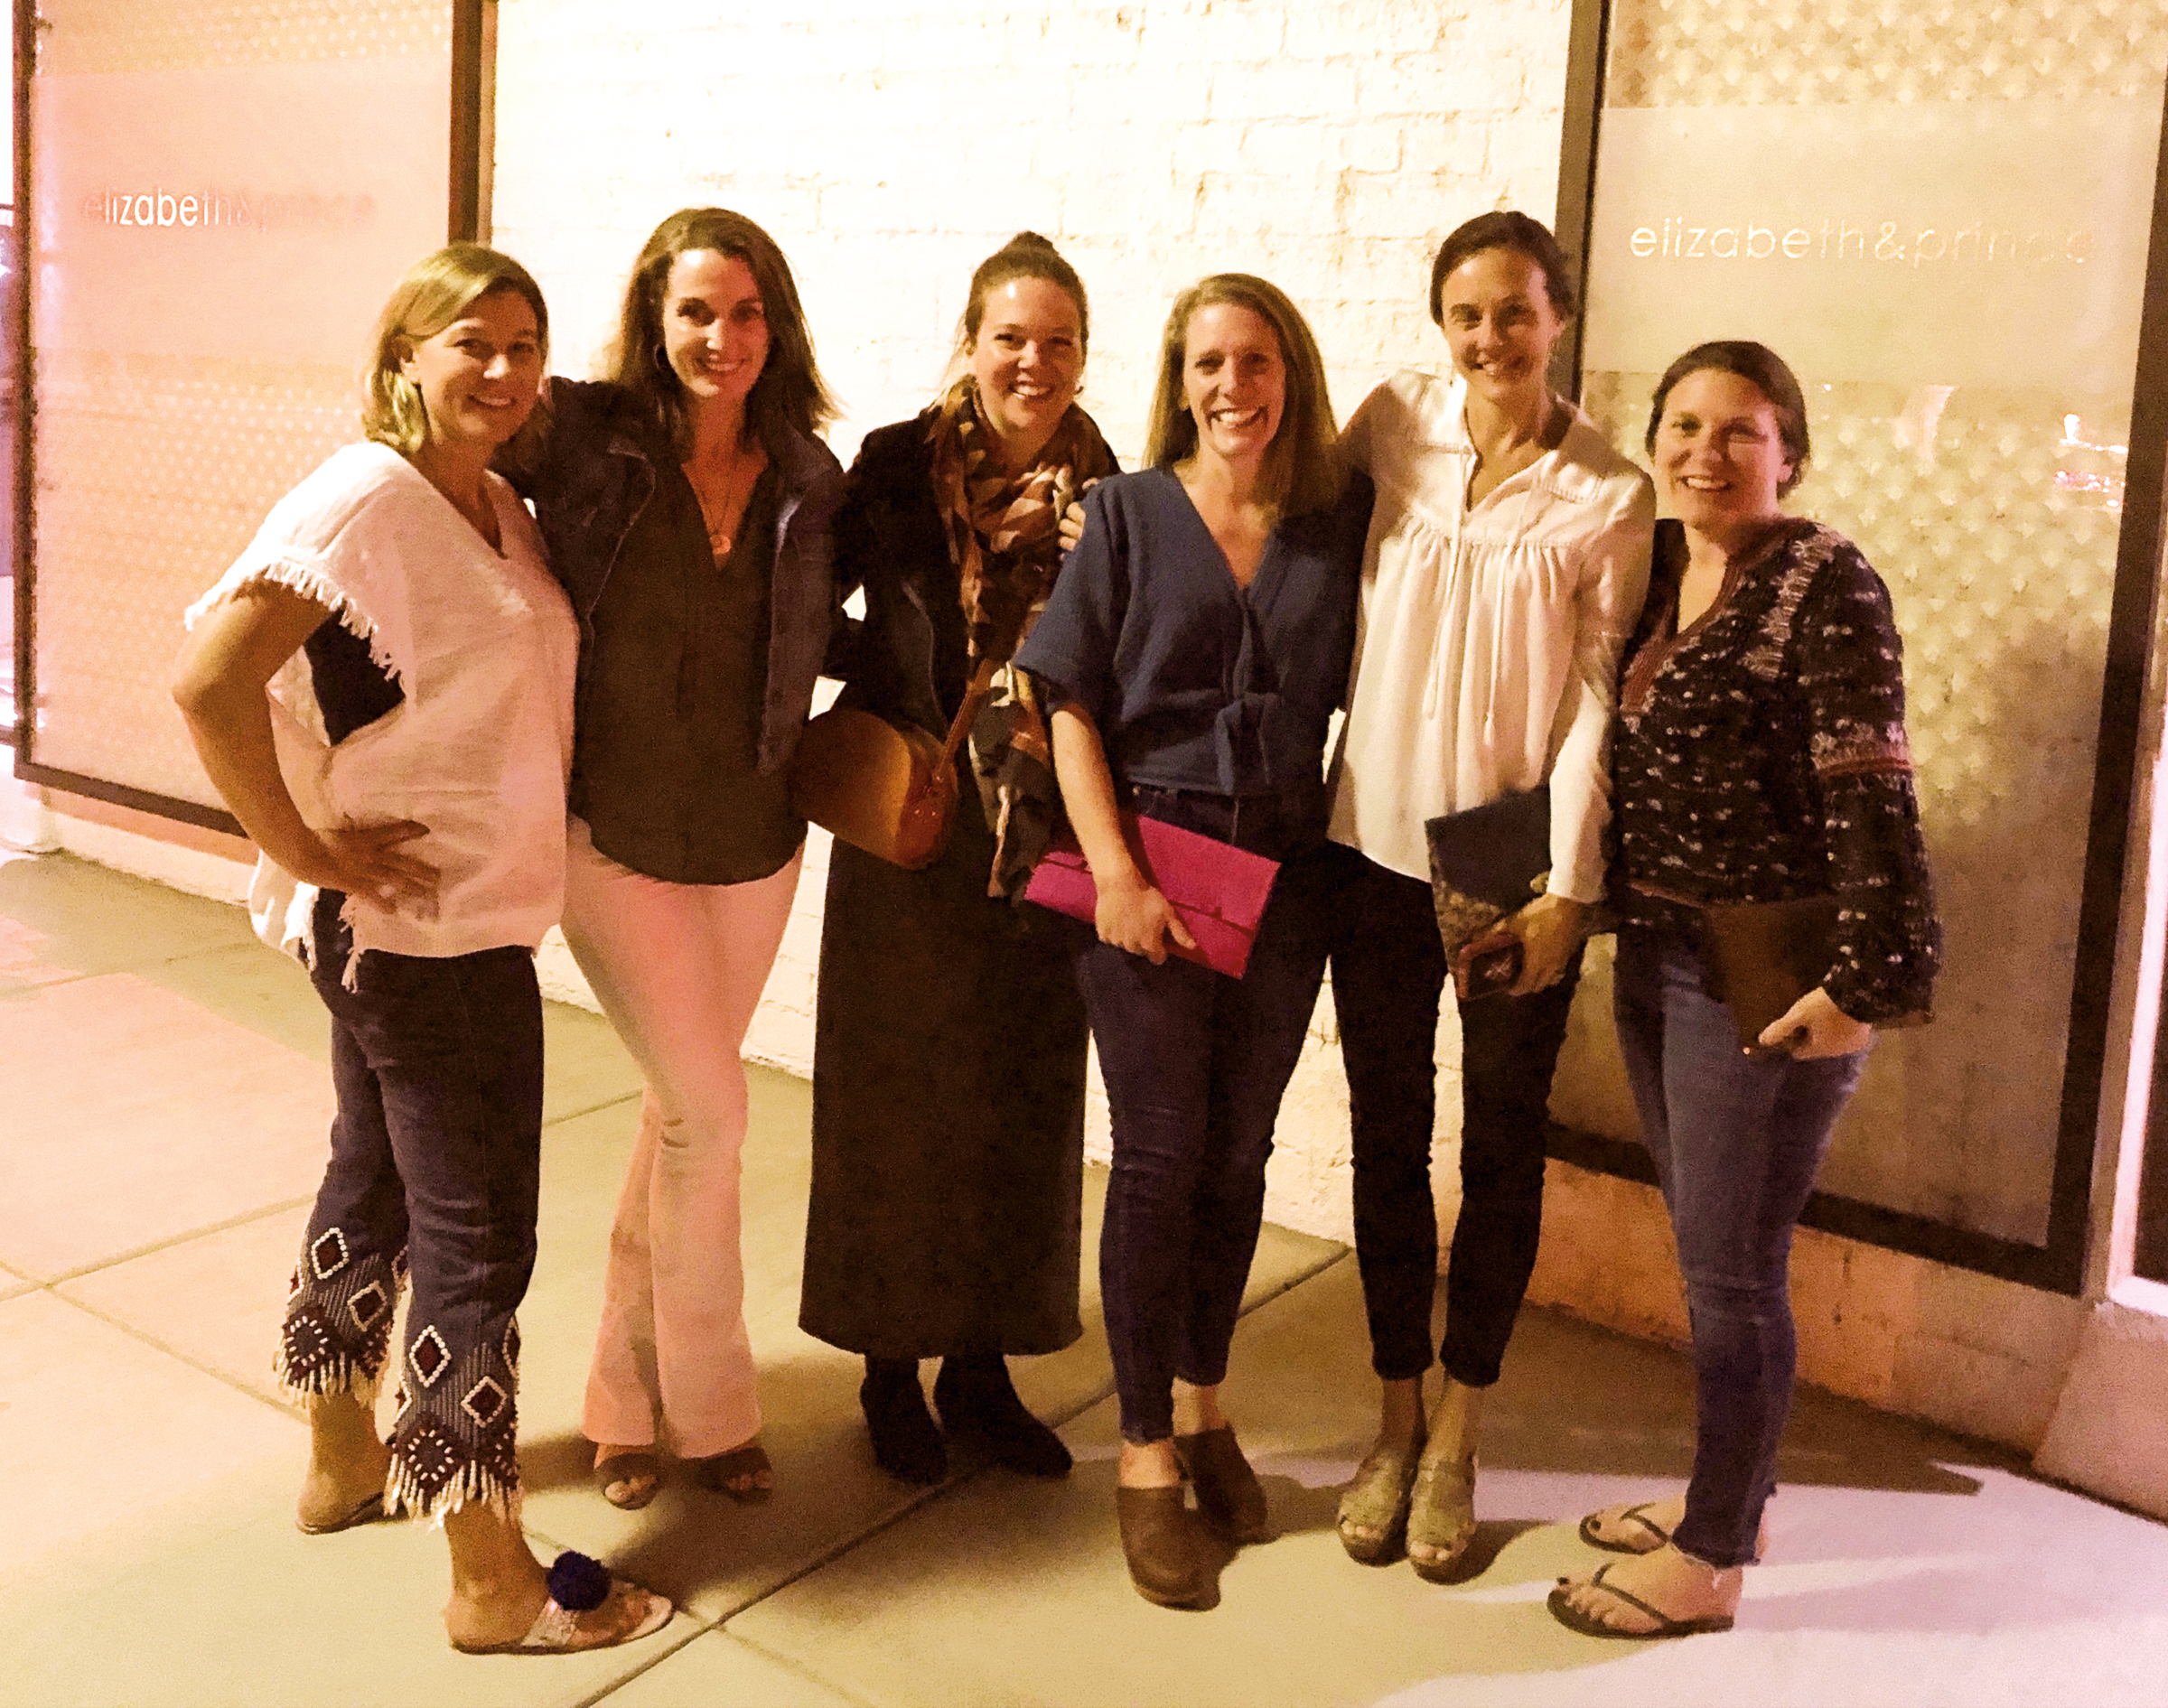 (L. to r.) Formmates Alyson (Grant) Jones '95, Courtney (Coles) Evans, Roberta (Bruce)  Paul, Lisa (Funk) Day, Alessia Carega, and Morgan Stewart met up in Palm Springs, Calif., in February.